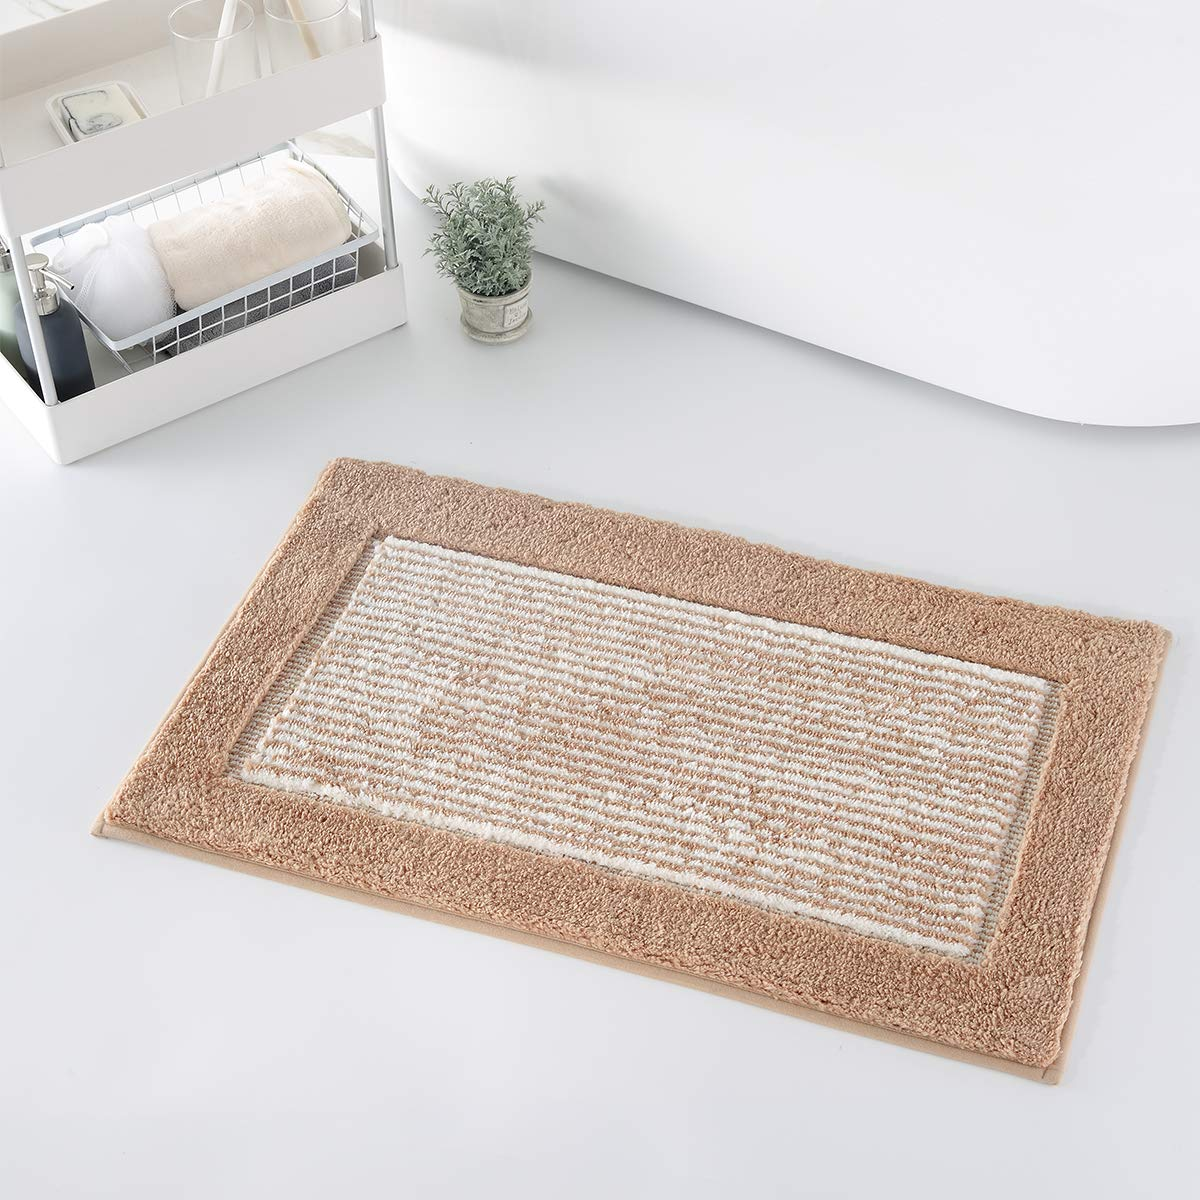 YUMEI Soft and Shaggy Bath Mats for Bathroom Non-Slip Machine-Washable Bath Rugs for Bedroom and Kitchen Super Absorbent Water Brown,20X32Inches